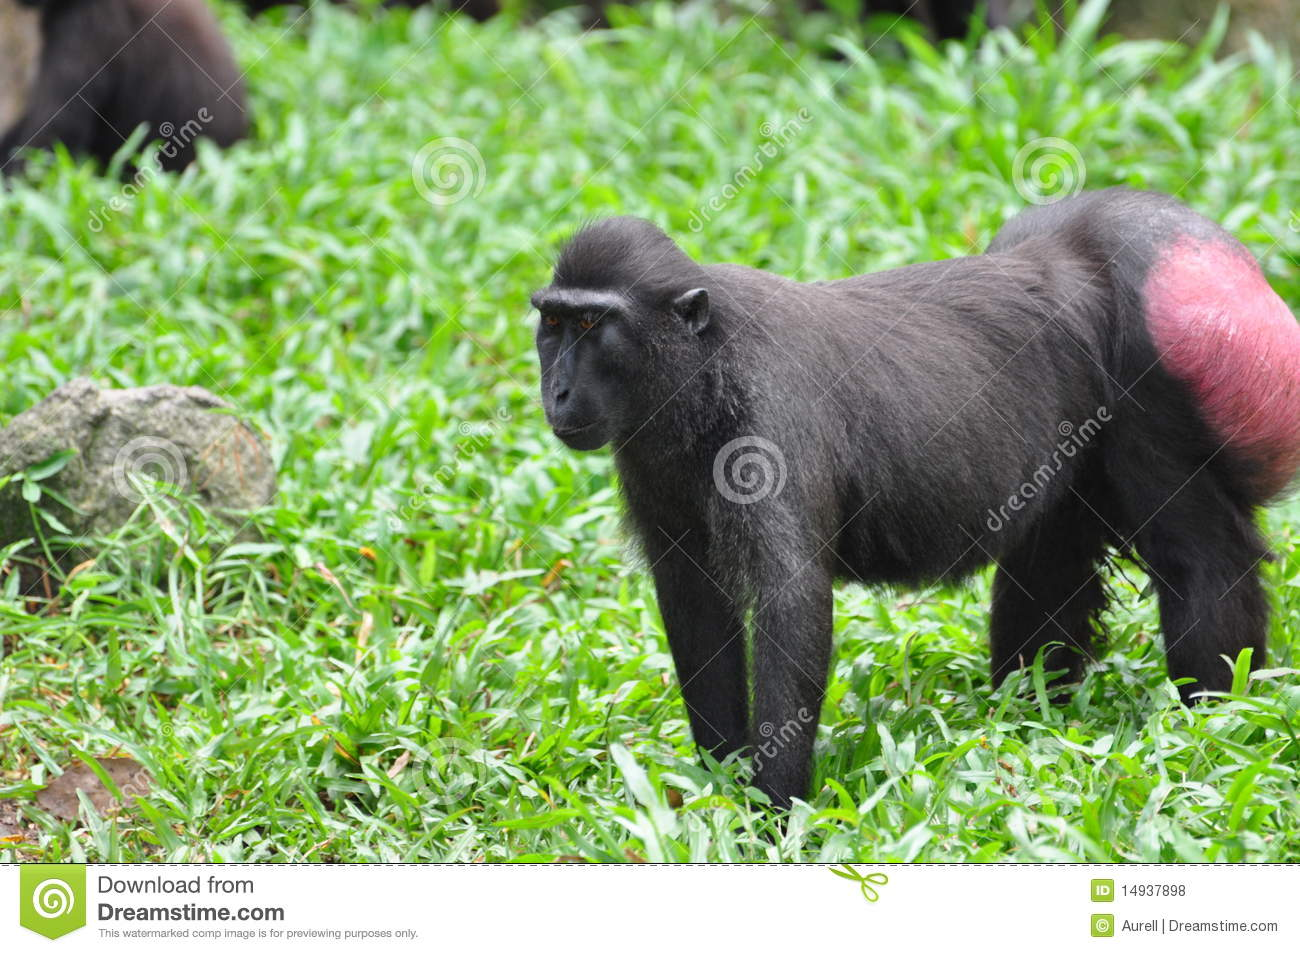 Celebes Crested Macaque clipart #20, Download drawings